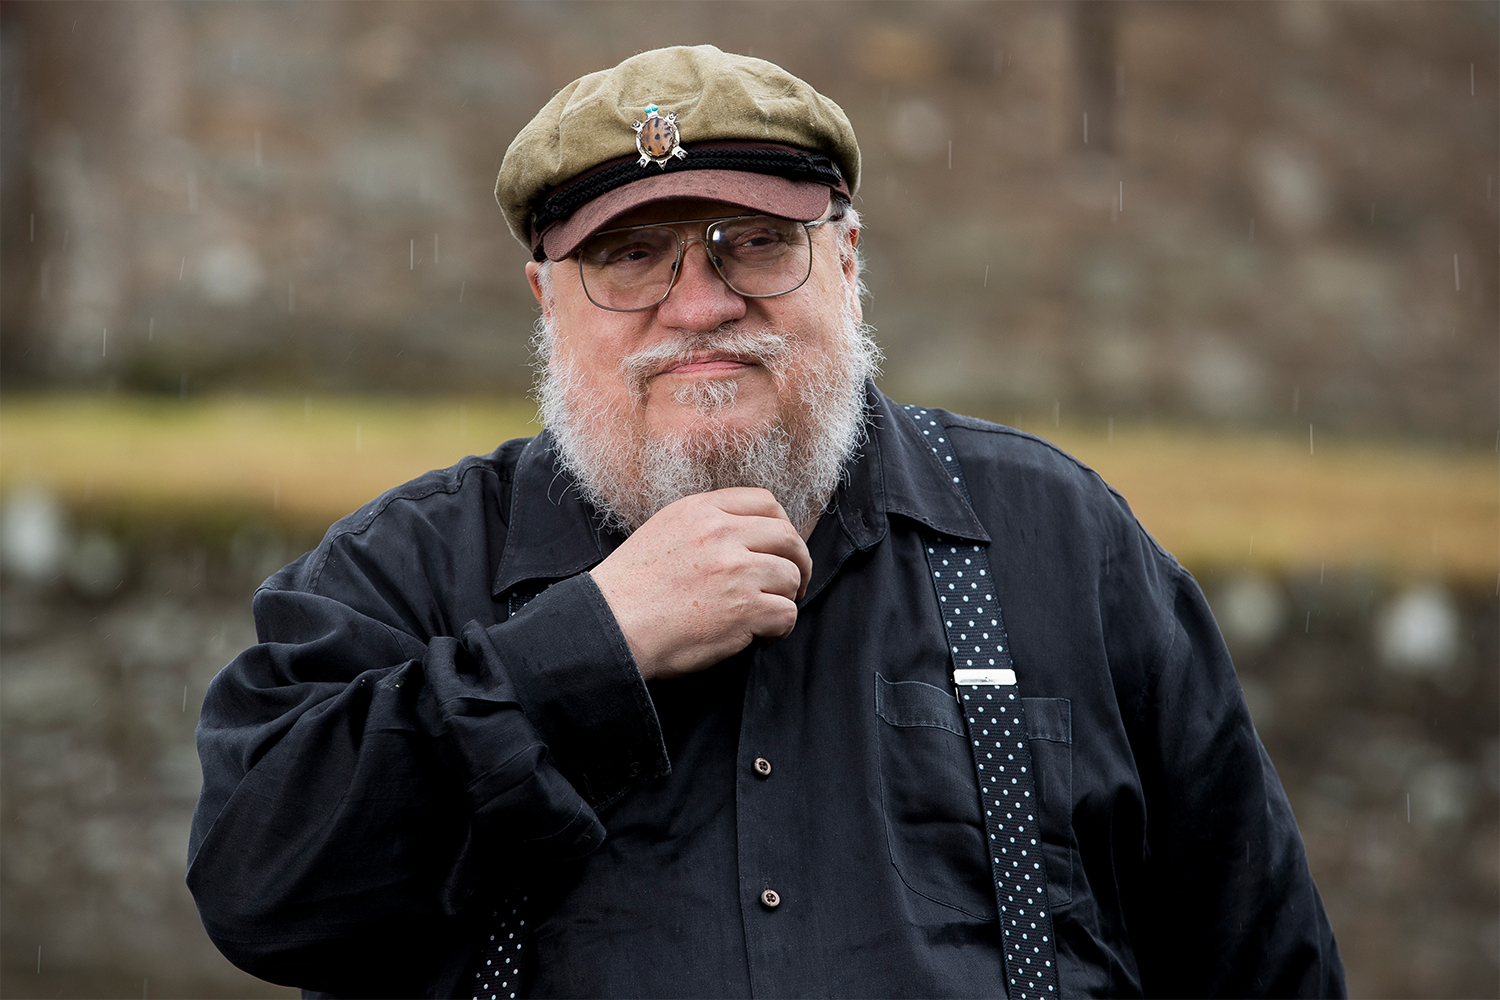 George R.R. Martin Buys Historic Railroad, Plans to Reopen ...